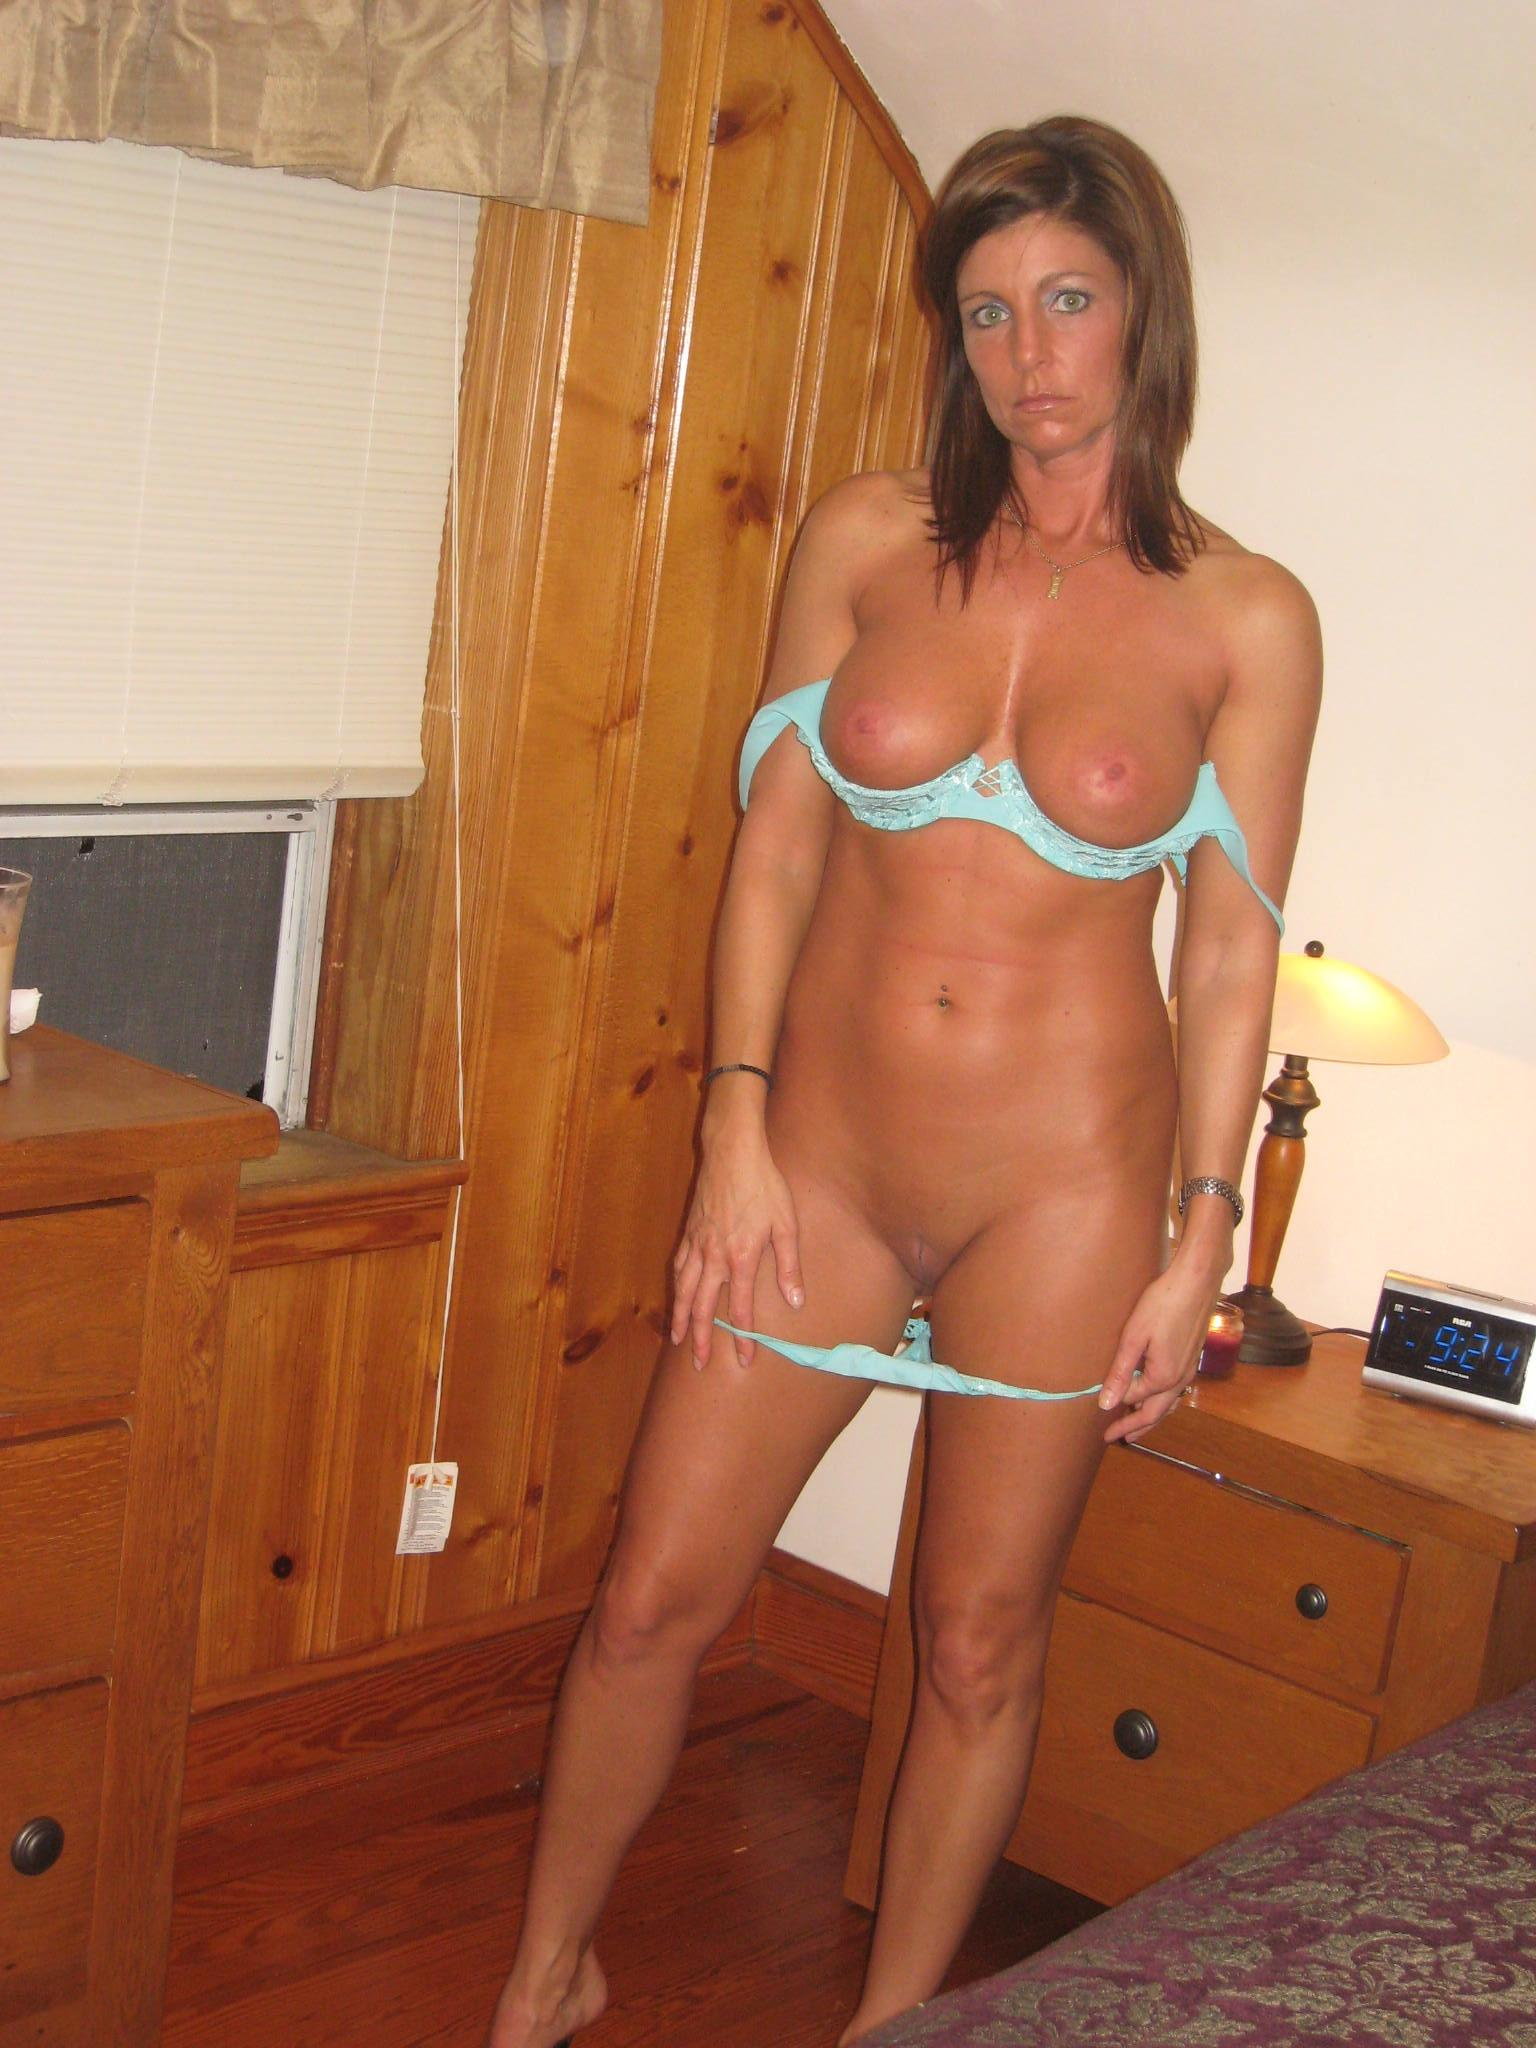 Hot MILF shows off her tight perfect nude body. Brunette amateur teases in blue panties before exposing her boobs